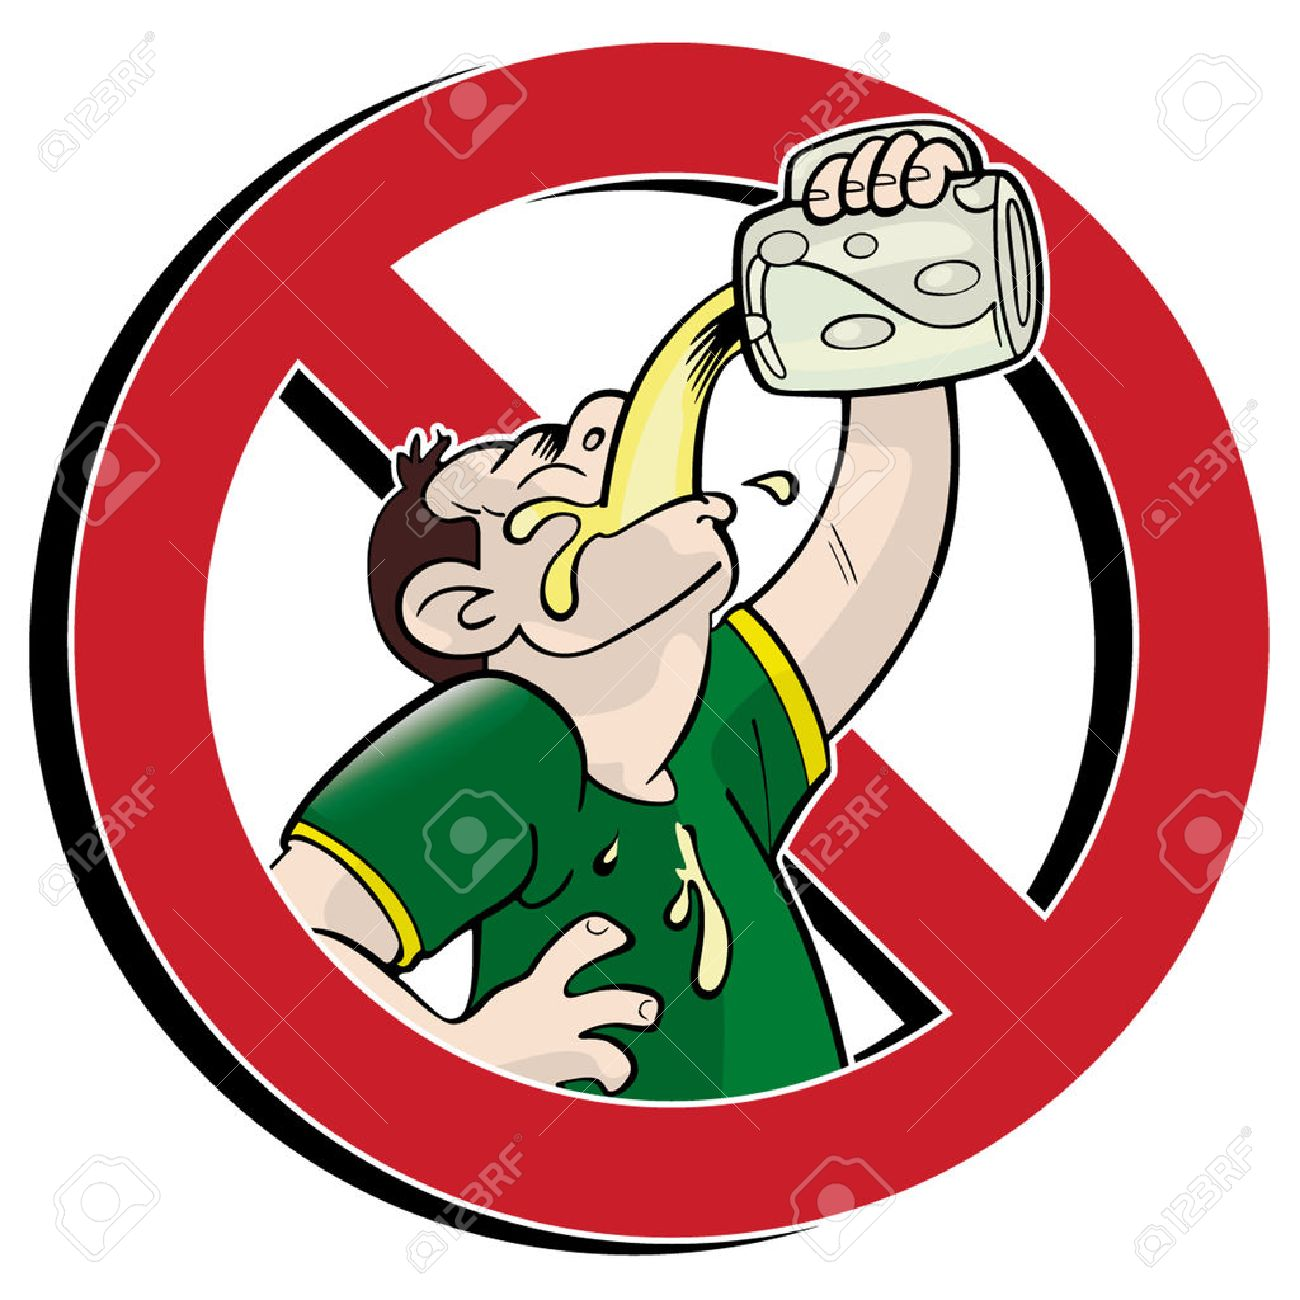 No drinking prohibition sign Stock Vector - 5029327